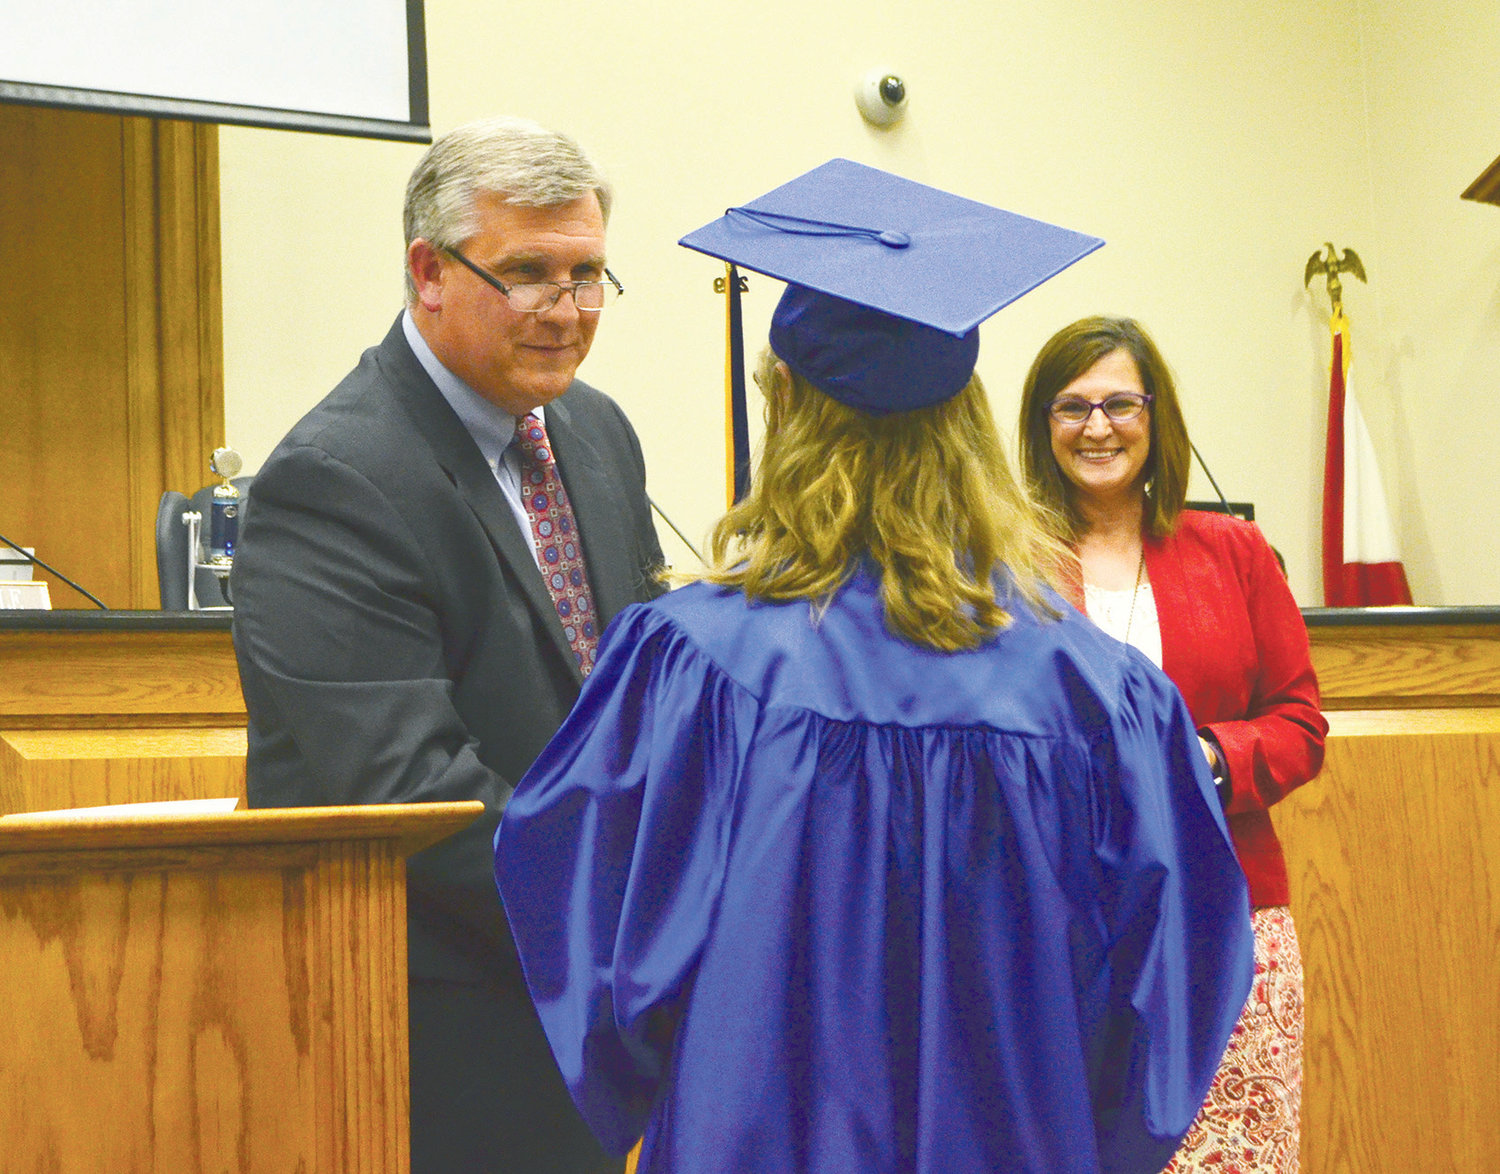 A graduation ceremony was held for Hope and Twilight graduates Thursday.